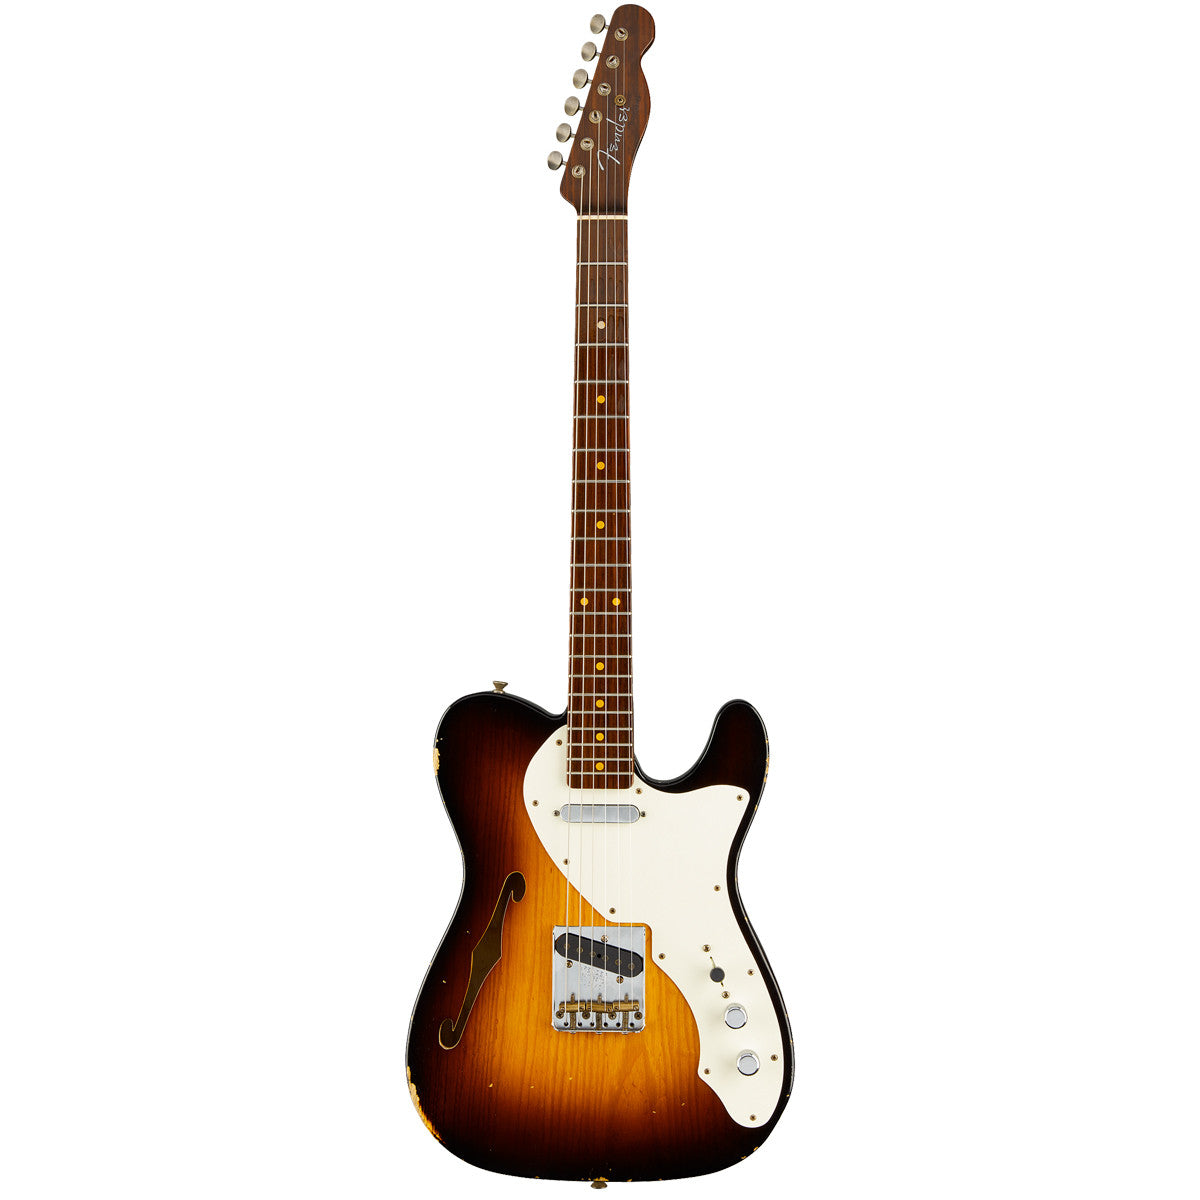 Fender Custom Shop - Limited Edition 50s Thinline Telecaster Relic - Wide Fade 2-Tone Sunburst | Lucky Fret Music Co.